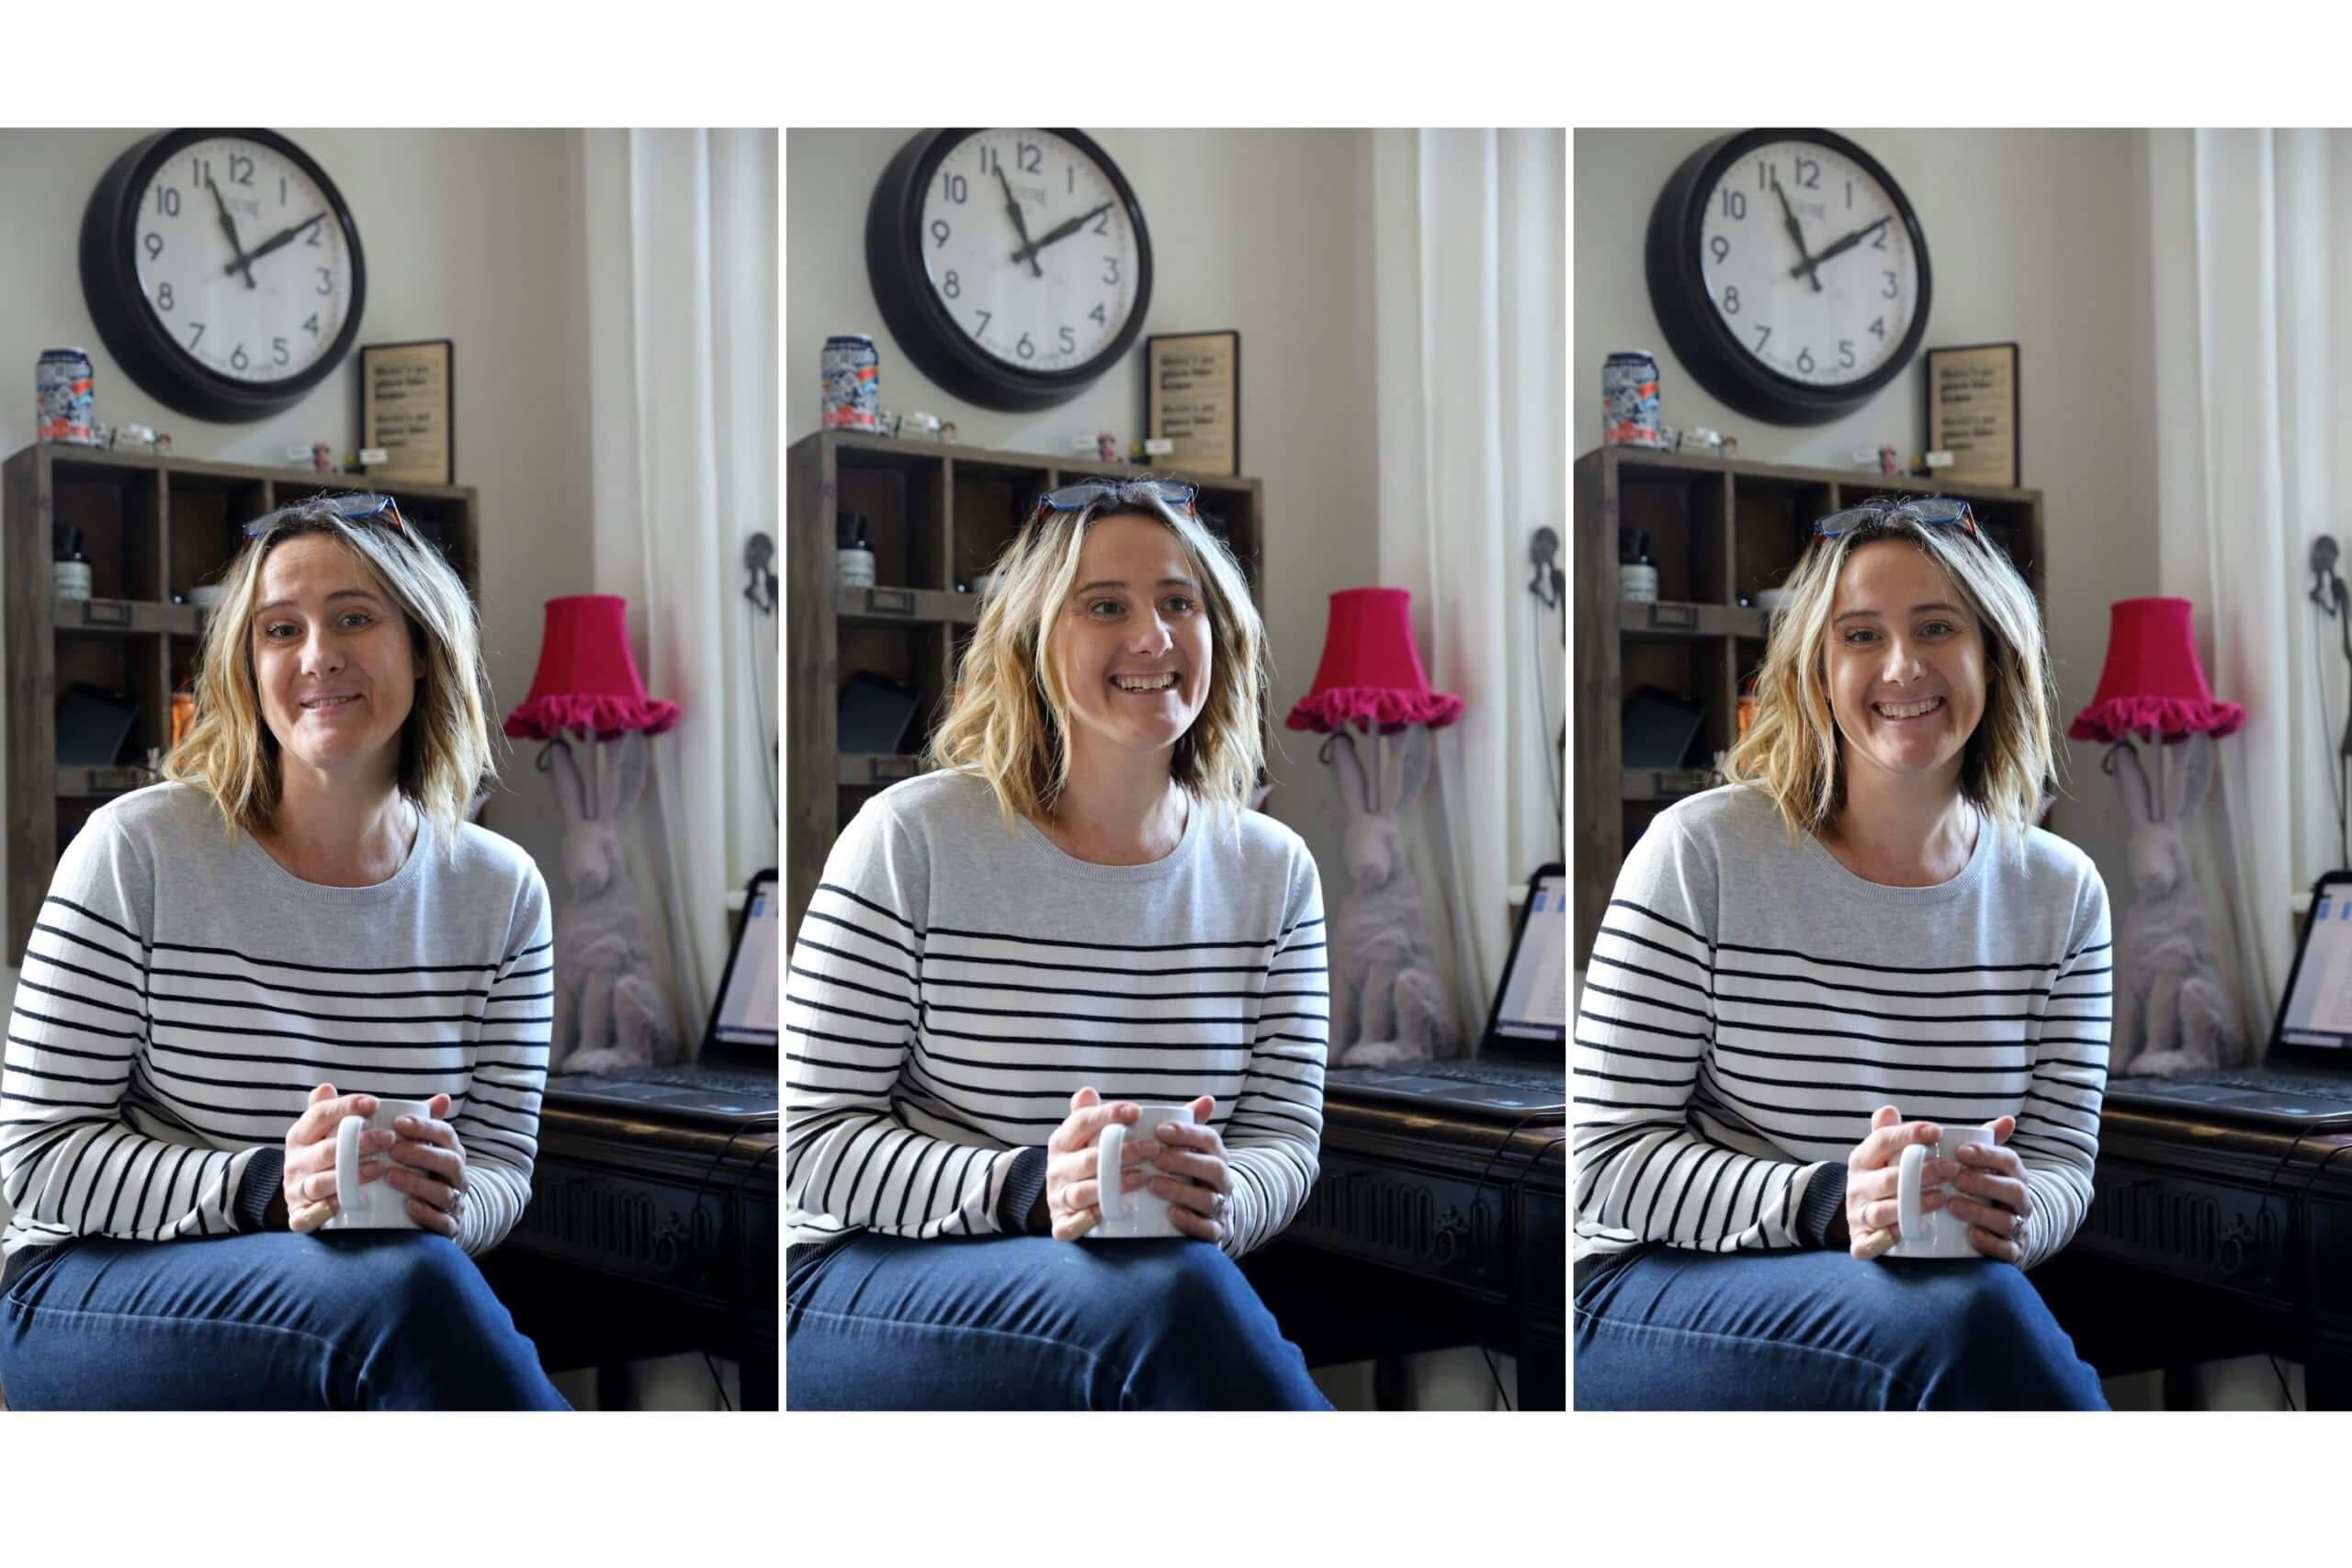 photography tips on looking for the moment